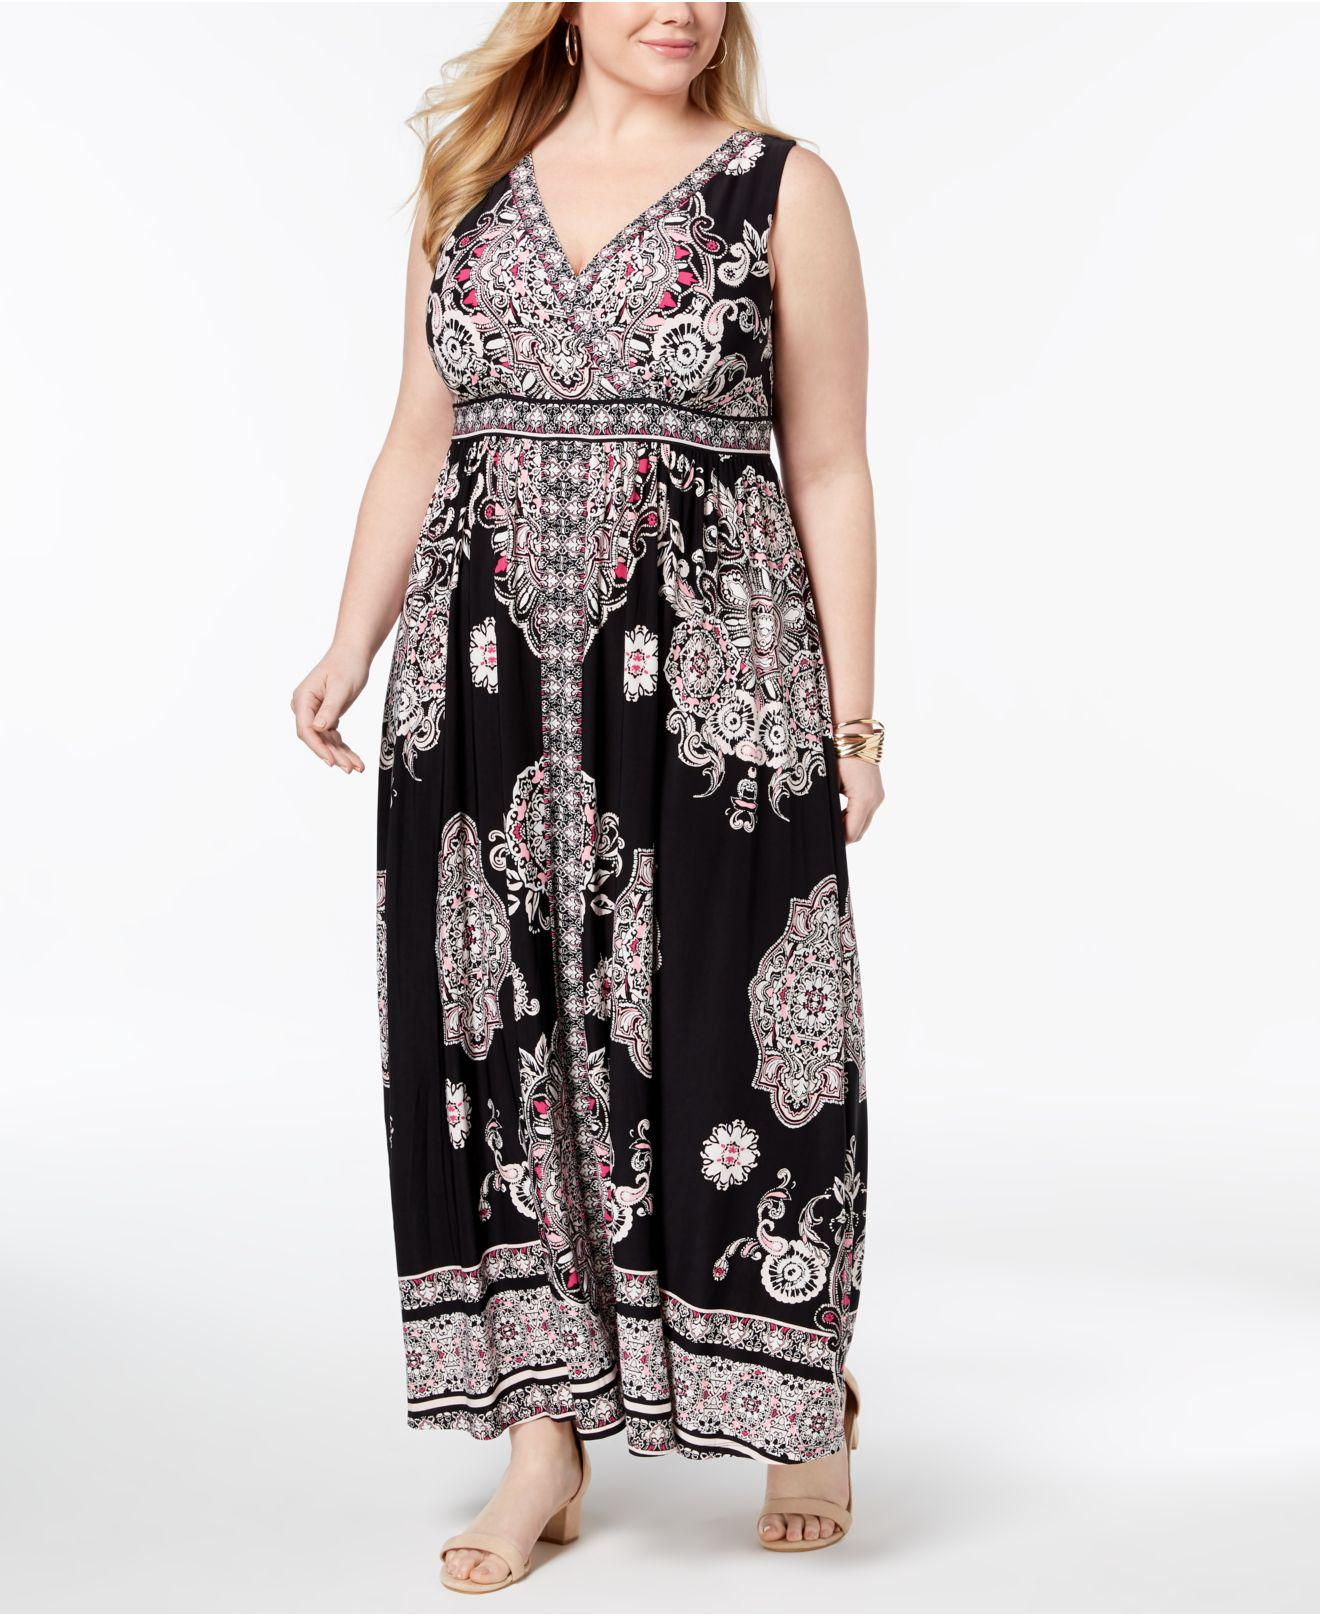 Maxi Dress Plus Size Macys